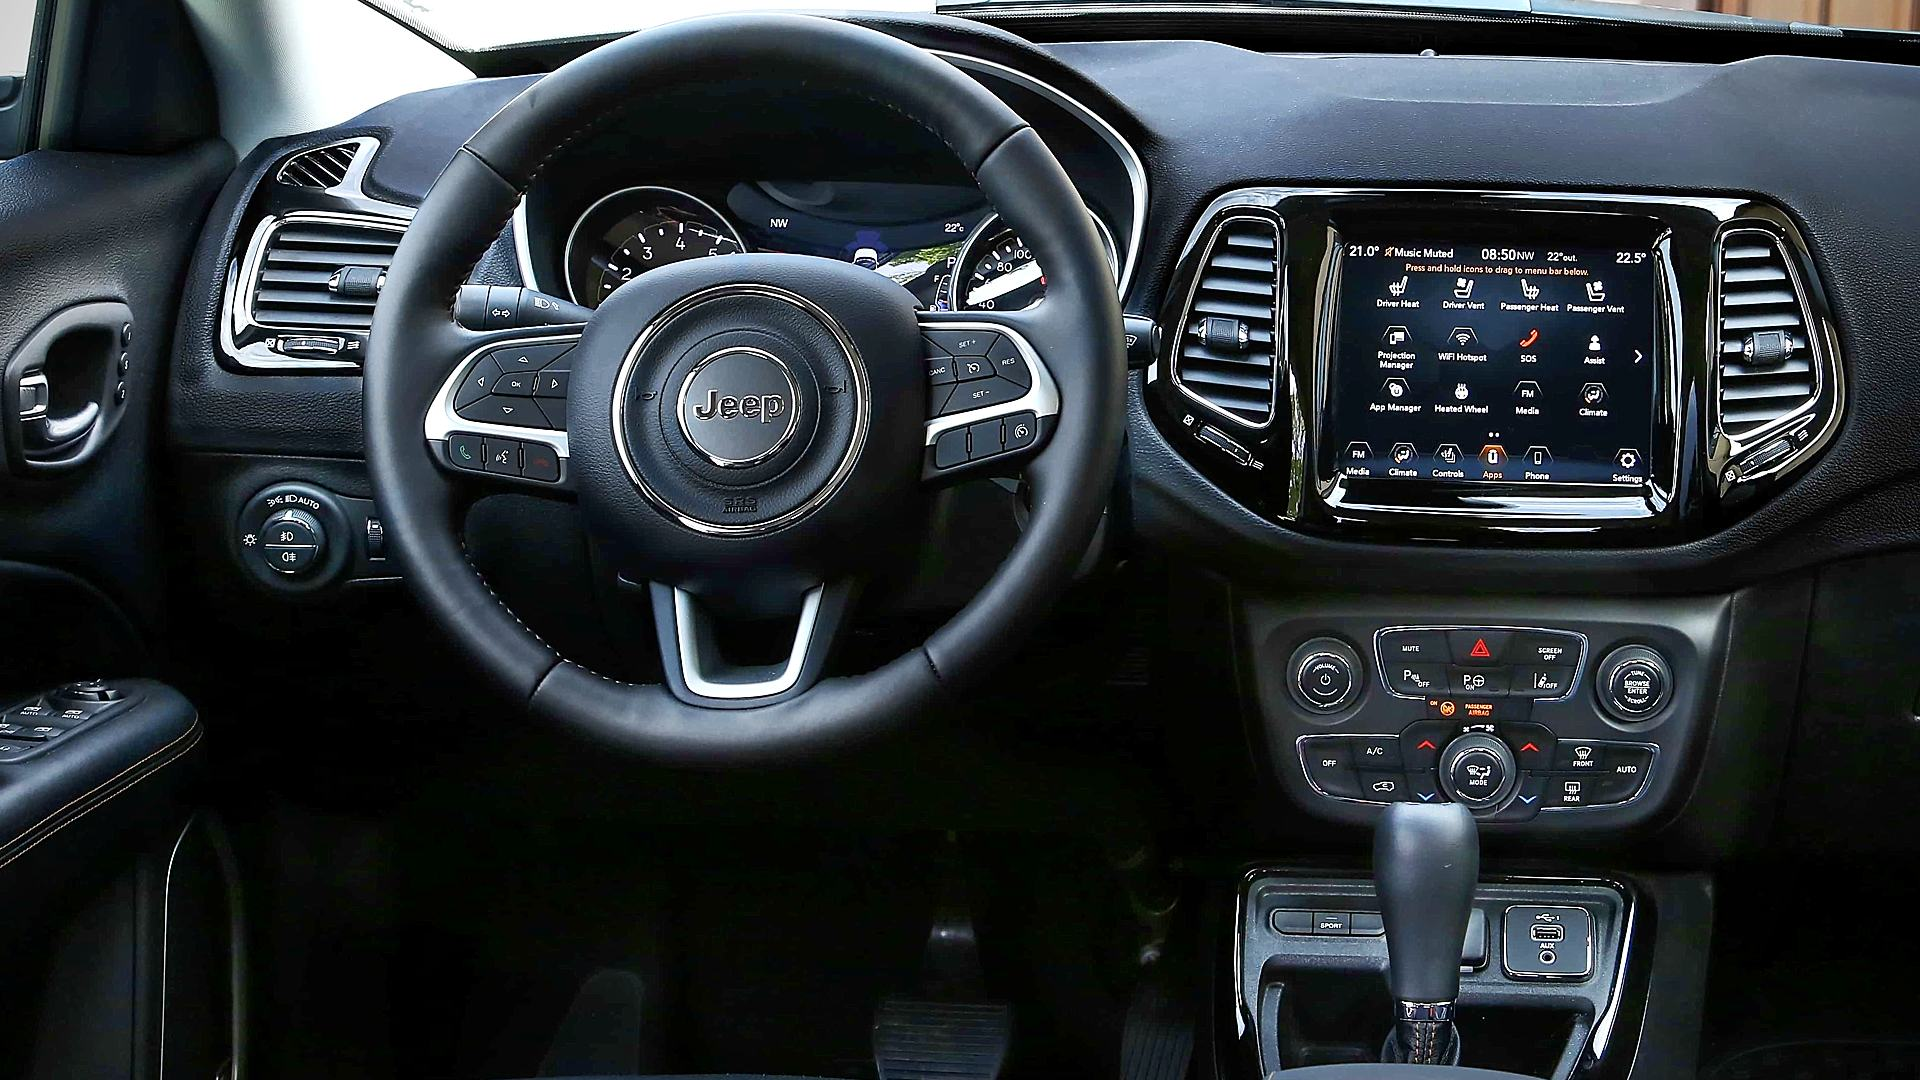 2021 Jeep Compass Interior Images